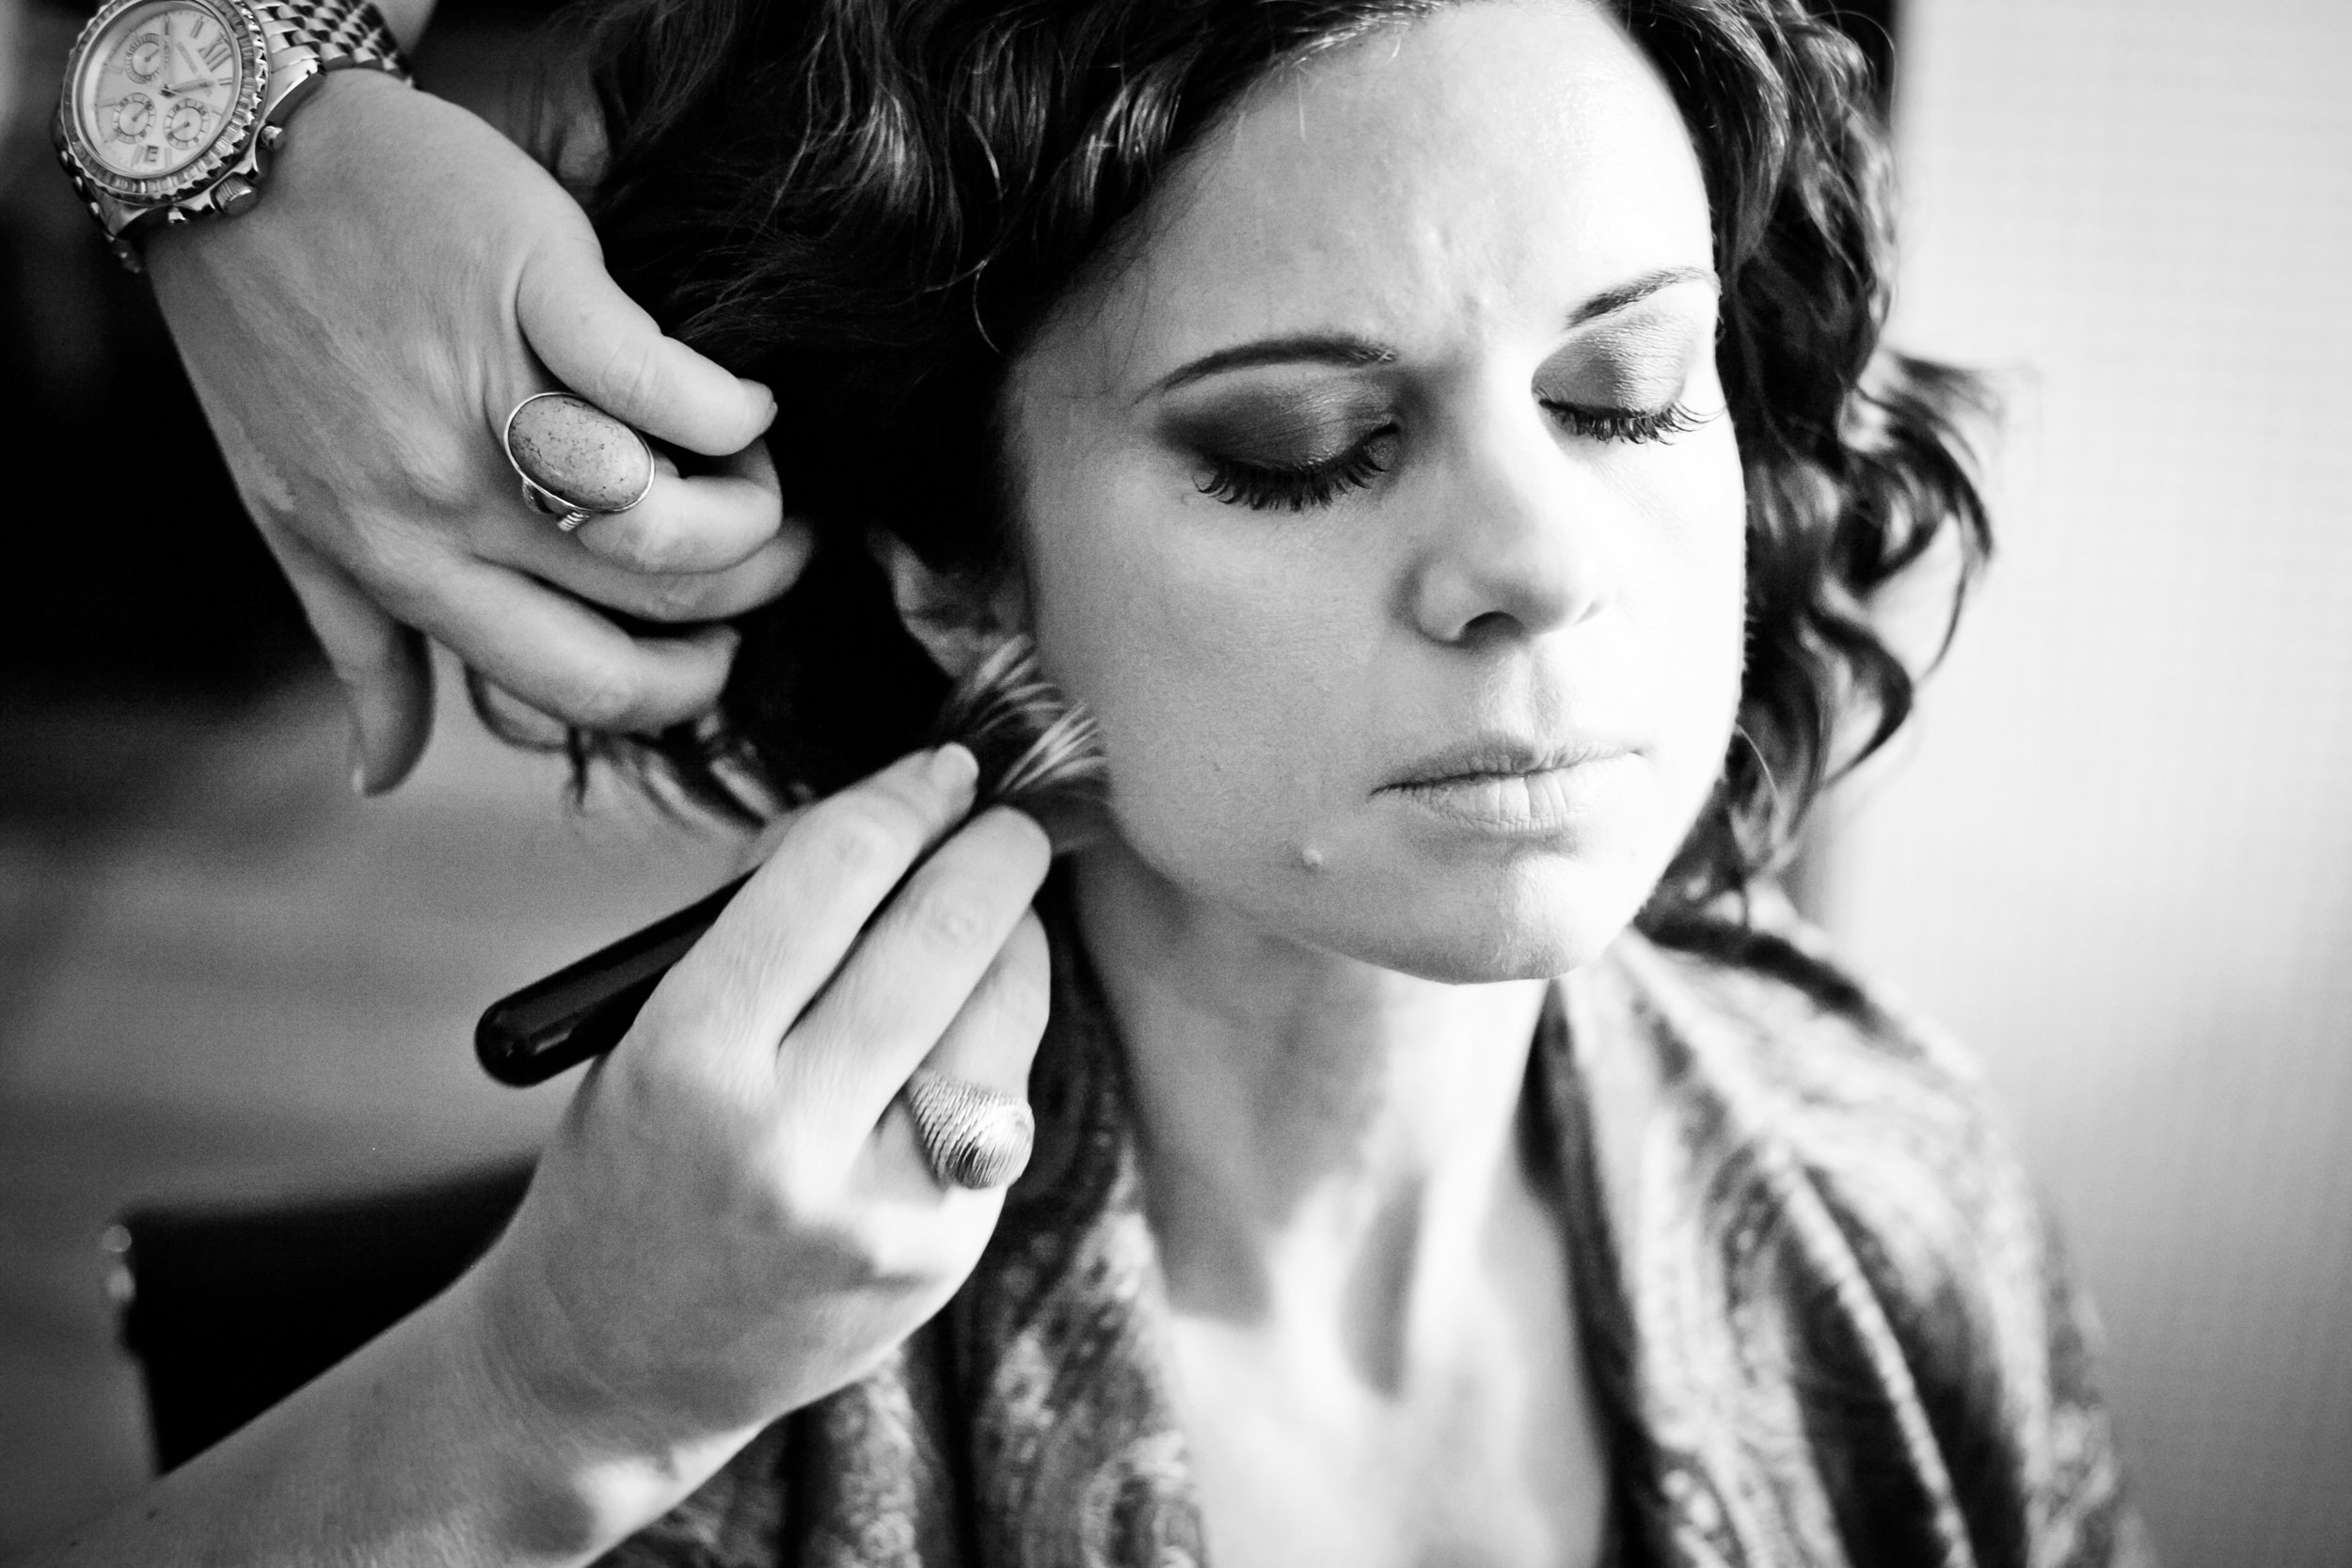 2 bride getting ready bride getting ready poses bride getting makeup done photos candid bride photos Life Design Events.jpg